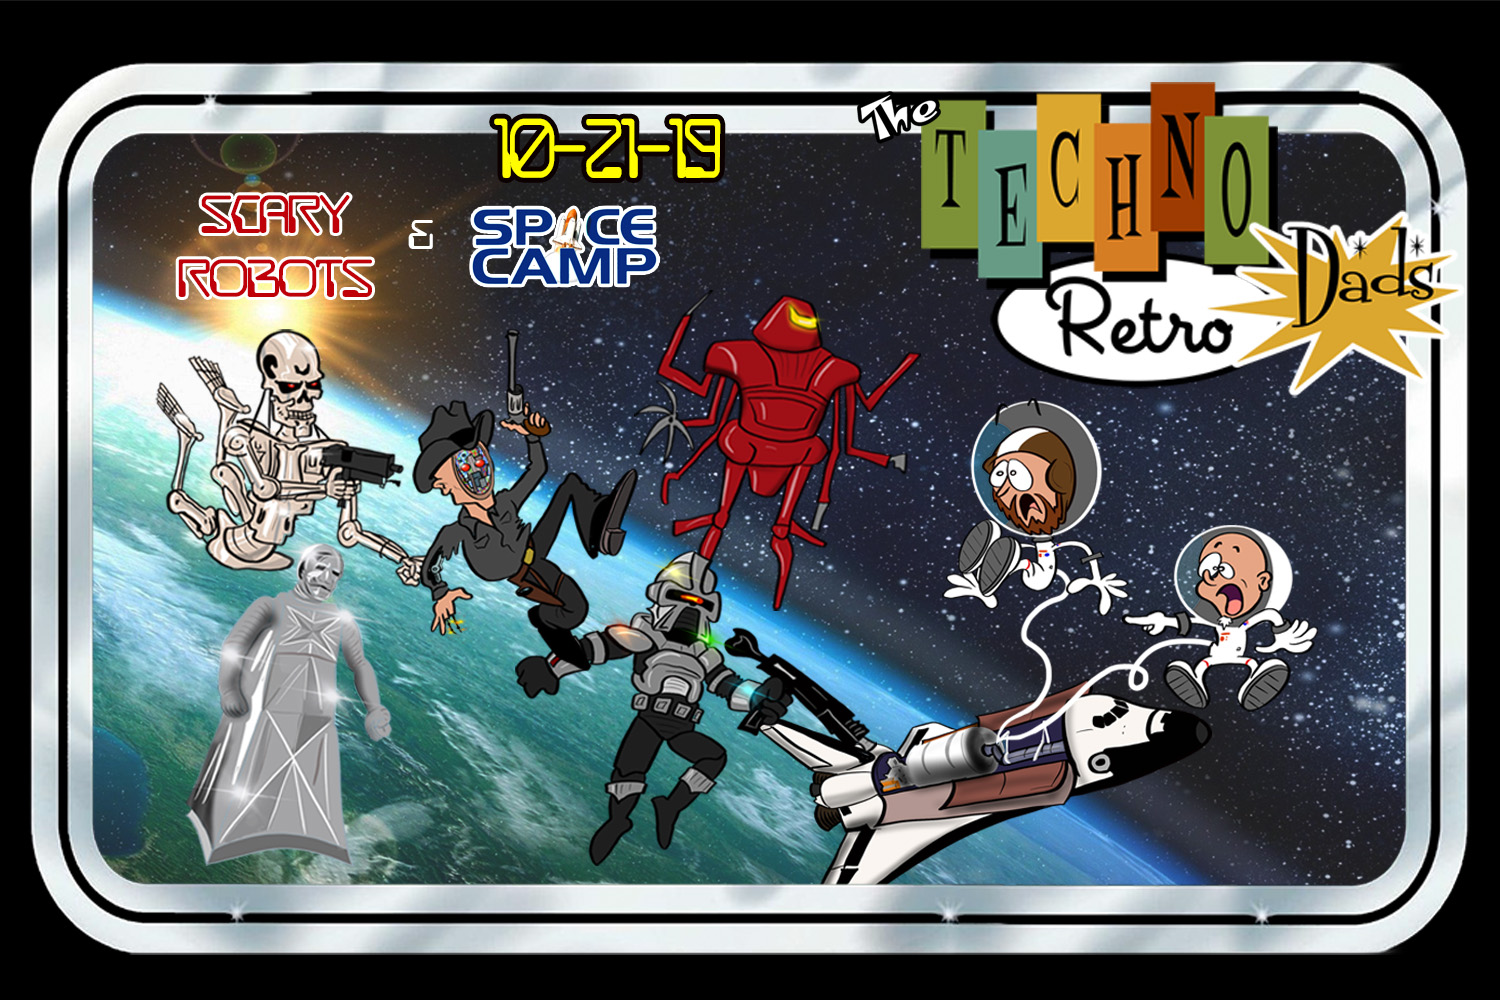 TechnoRetro Dads: Space Camp with JediShua and Scary Robots